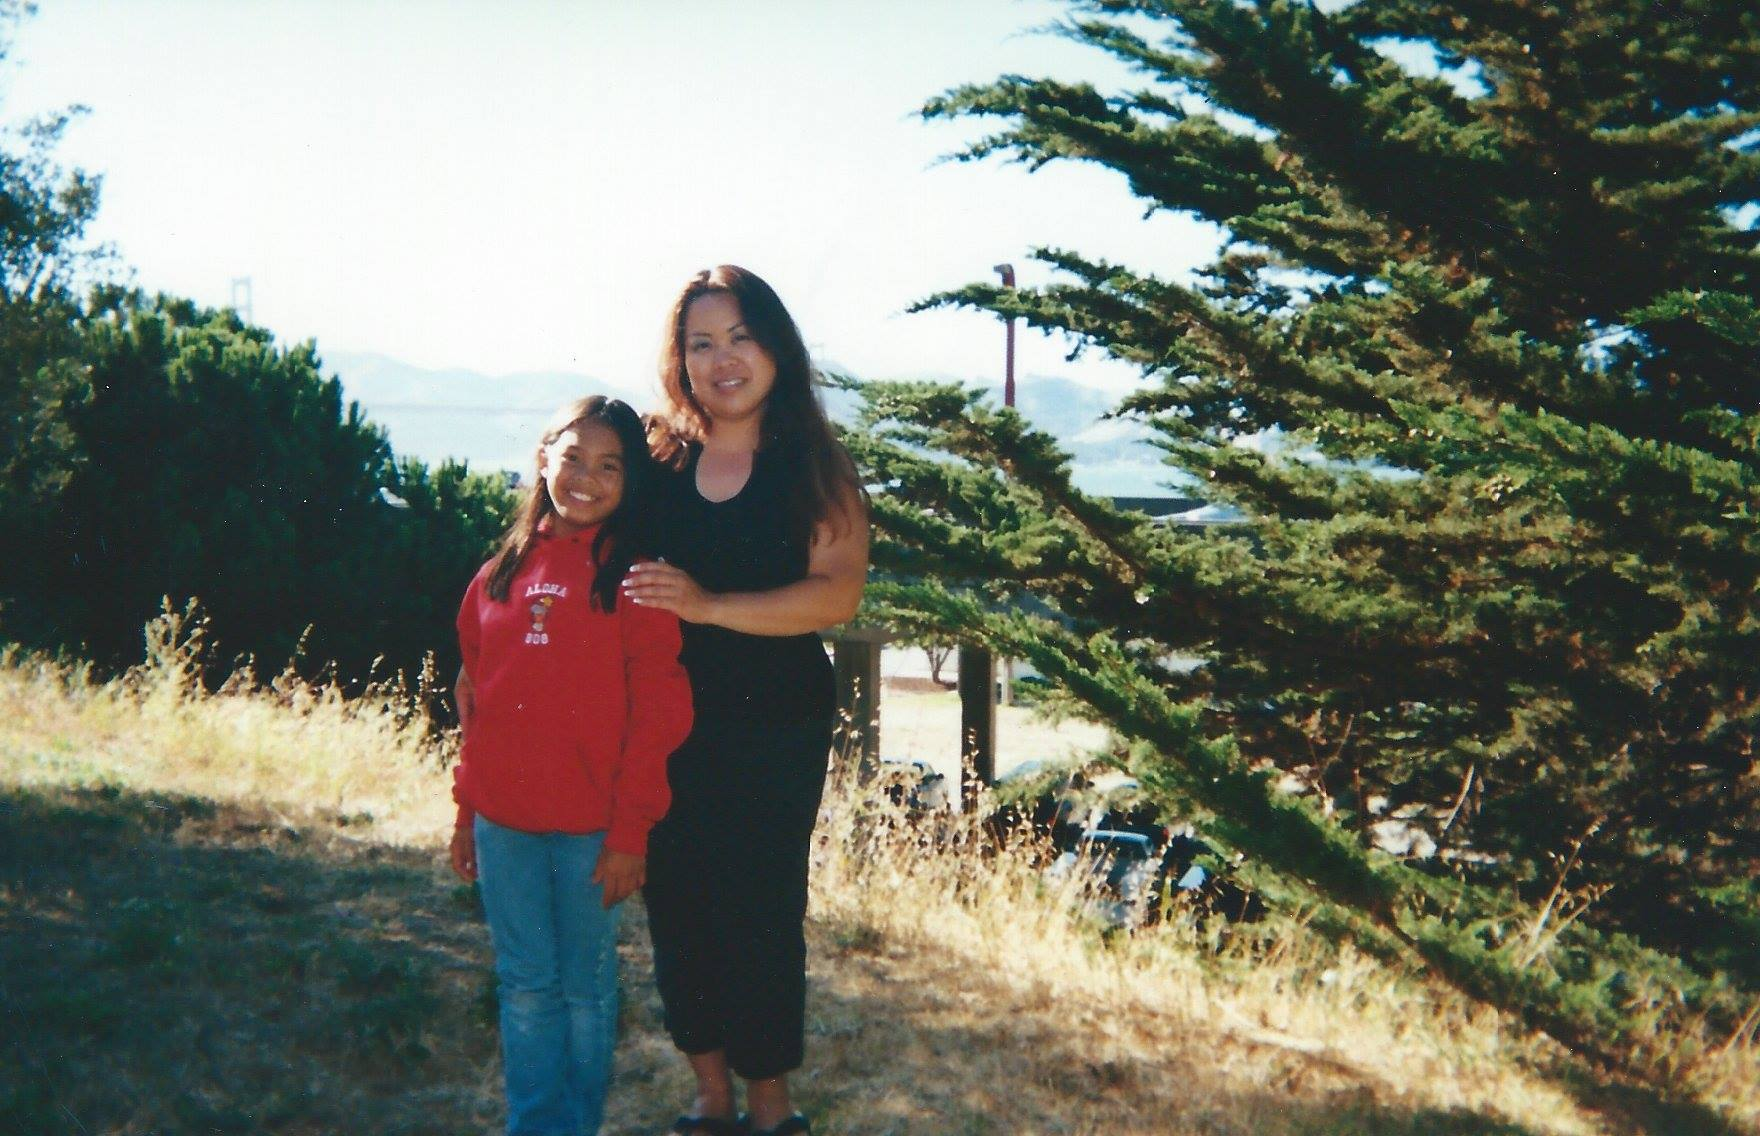 Every summer, my mom would take me the Presidio for the Aloha Festival. She enrolled me in my first hula class when I was 5-6 years old, and I danced for several years. We have been to Hawaii several times, and she still goes just about every year.